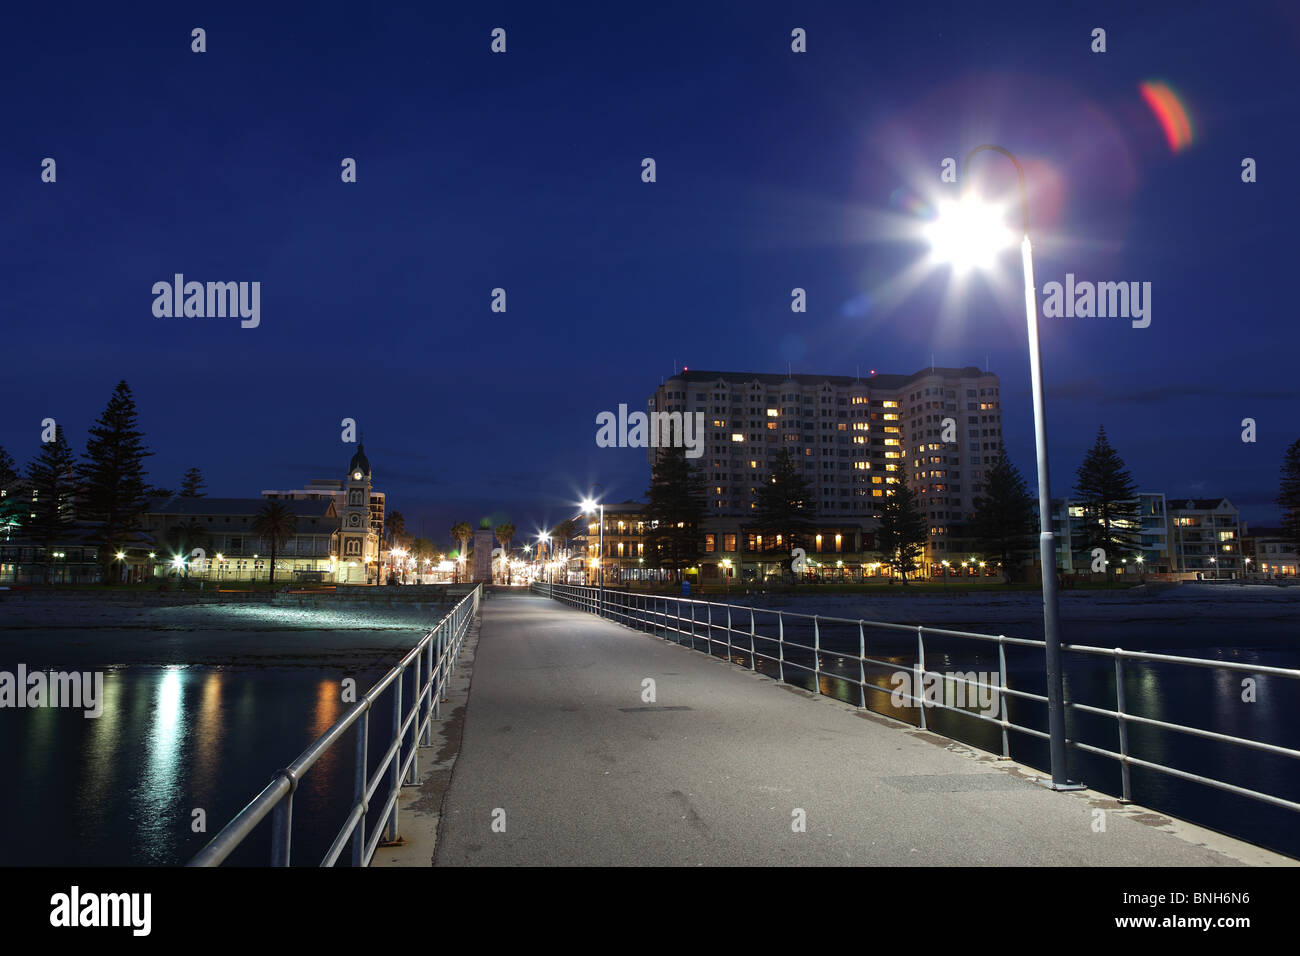 A light shines on the Glenelg Jetty in Adelaide, South Australia, just after sunset. - Stock Image